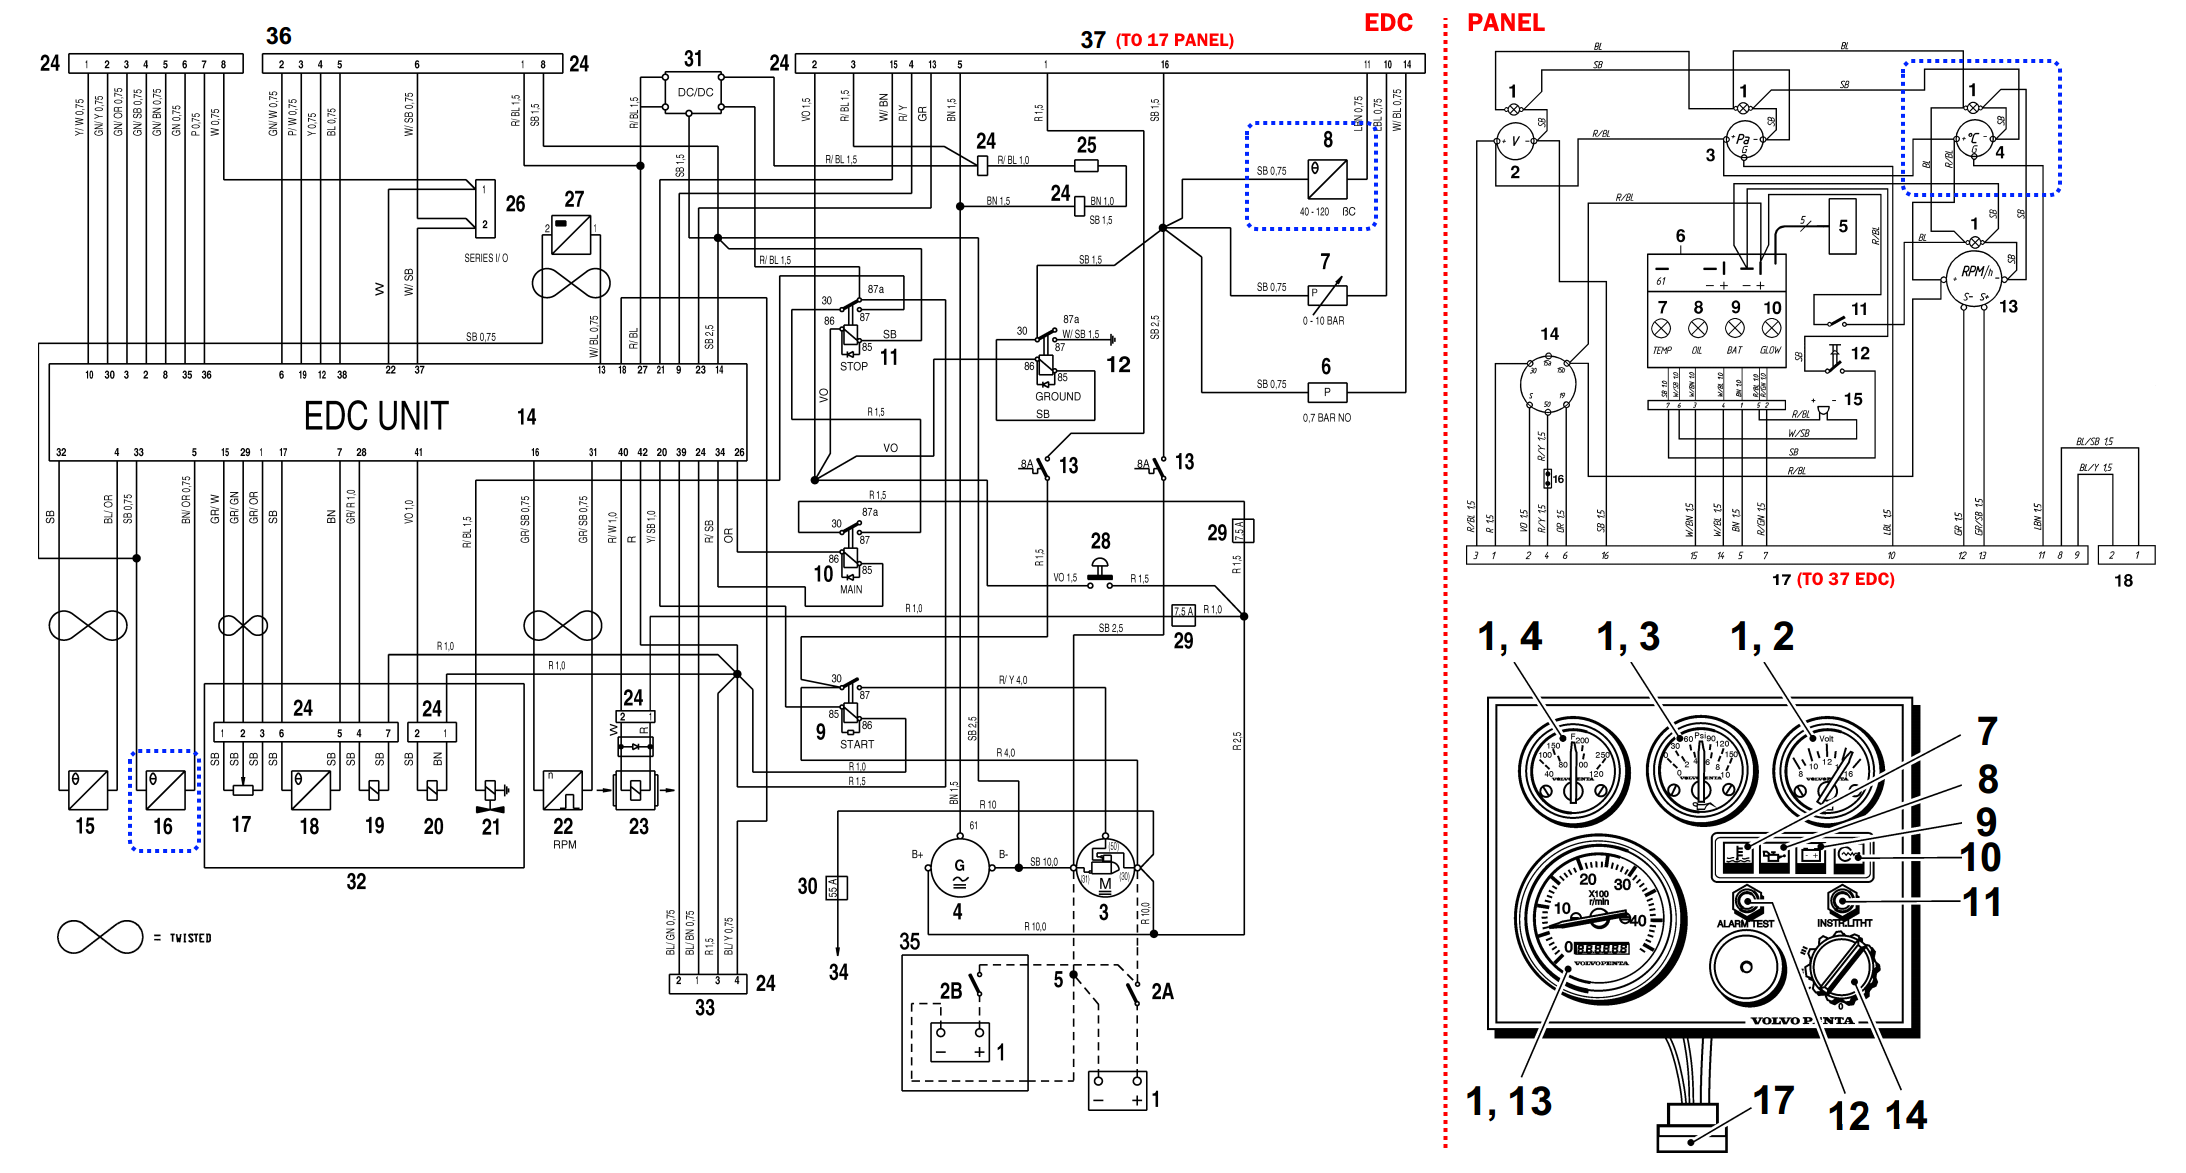 Mercruiser Trim Sender Wiring Diagram moreover Mercruiser Fuel Injector Parts Diagram further 3 0 Mercruiser Starter Wiring Diagram together with 2002 Vw Jetta 2 0 Engine Diagram as well . on mercruiser parts diagram harness auto wiring